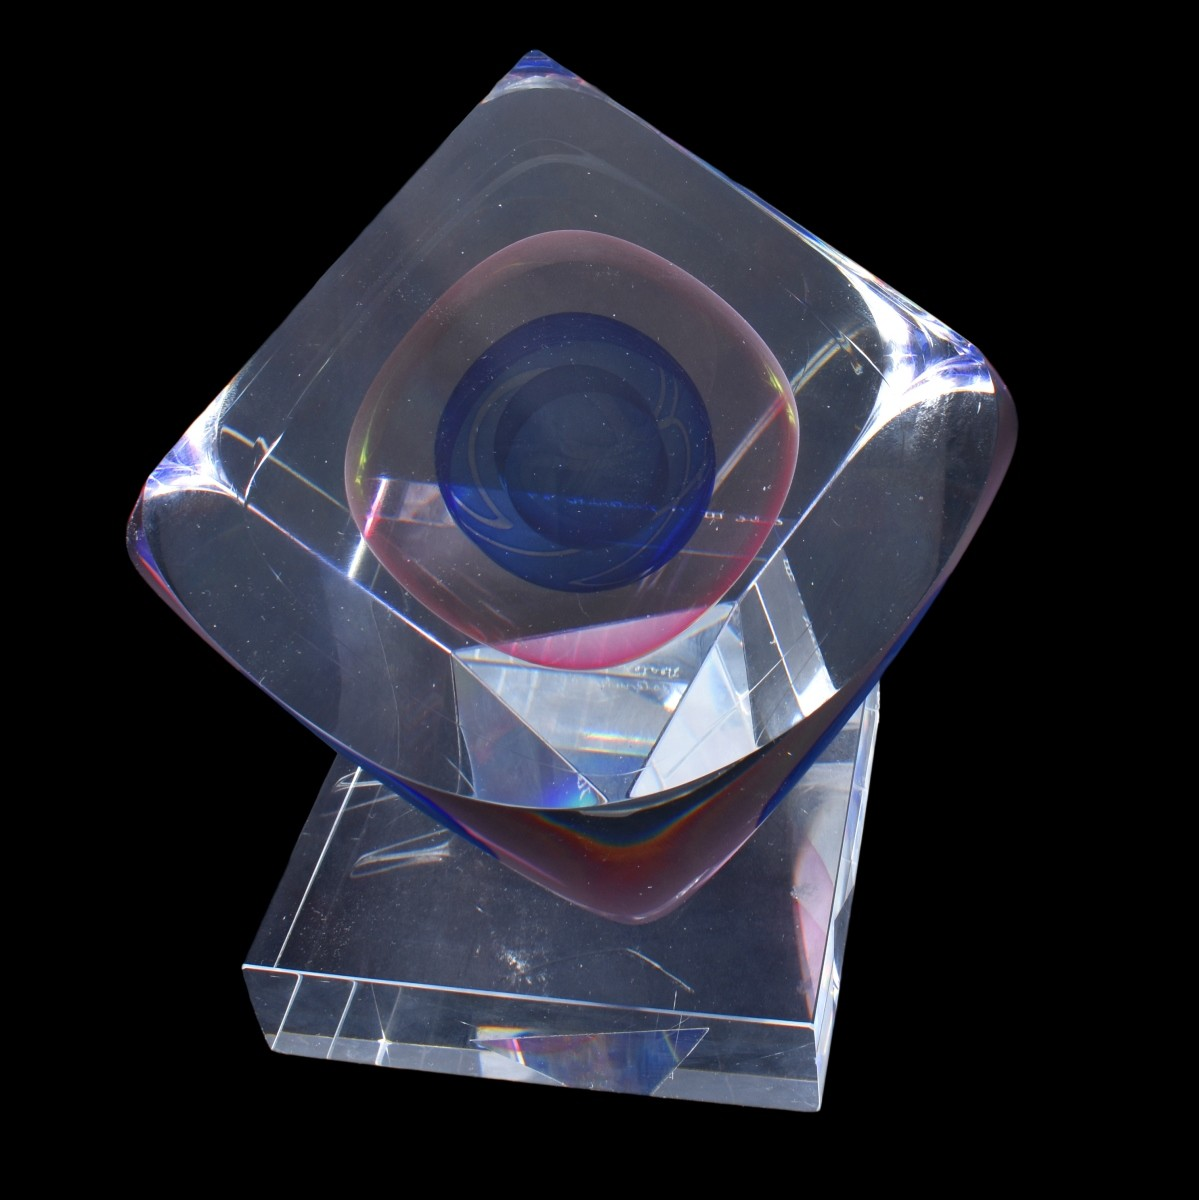 Nesteruk (born 1941) Art Glass Sculpture